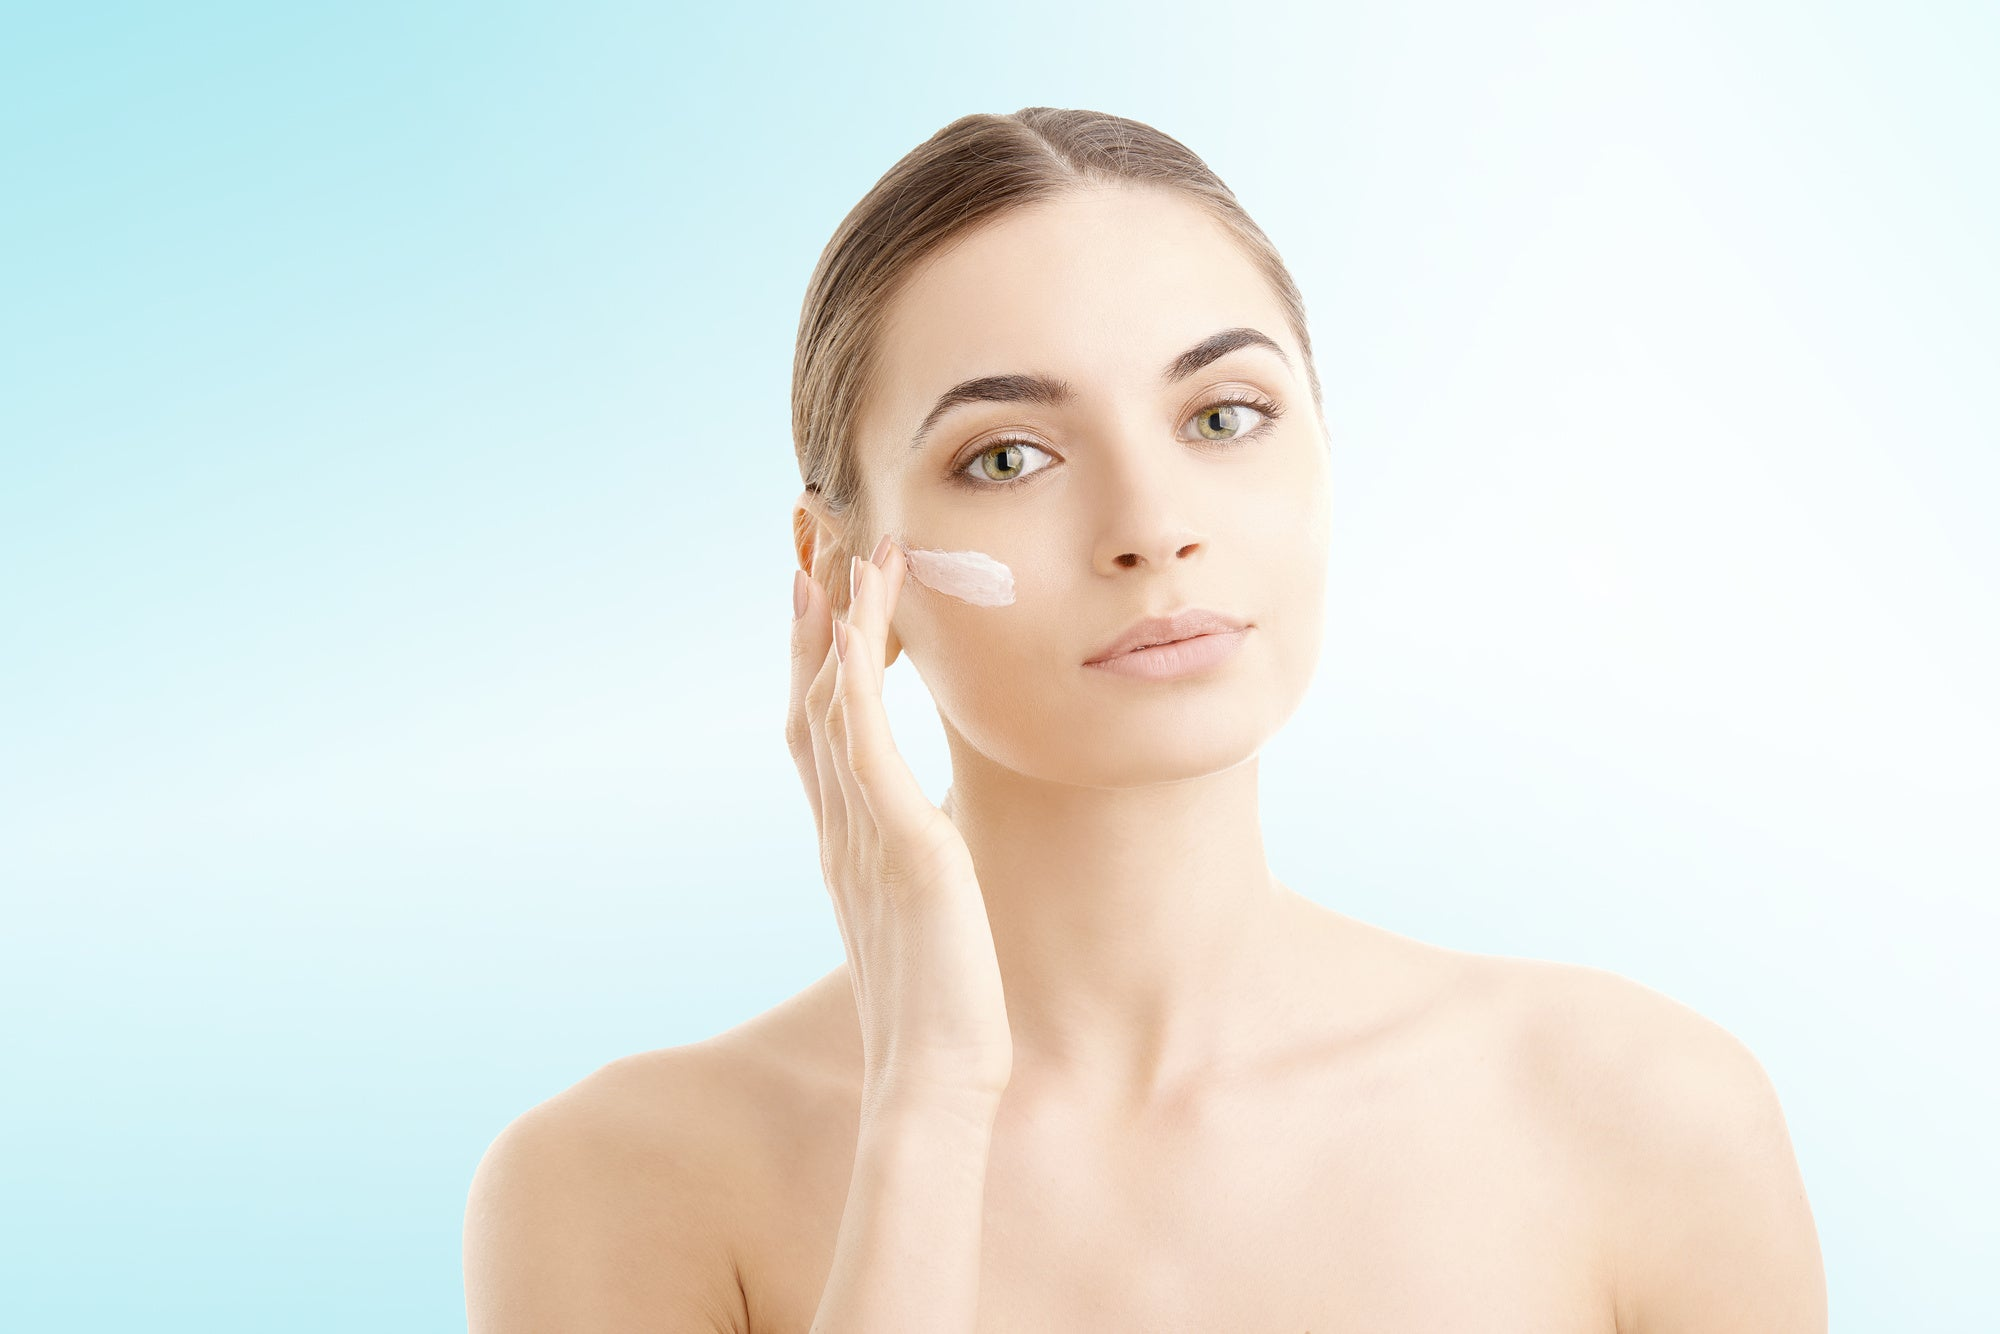 10 Natural, Holistic Skin Care Tips You Have to Try